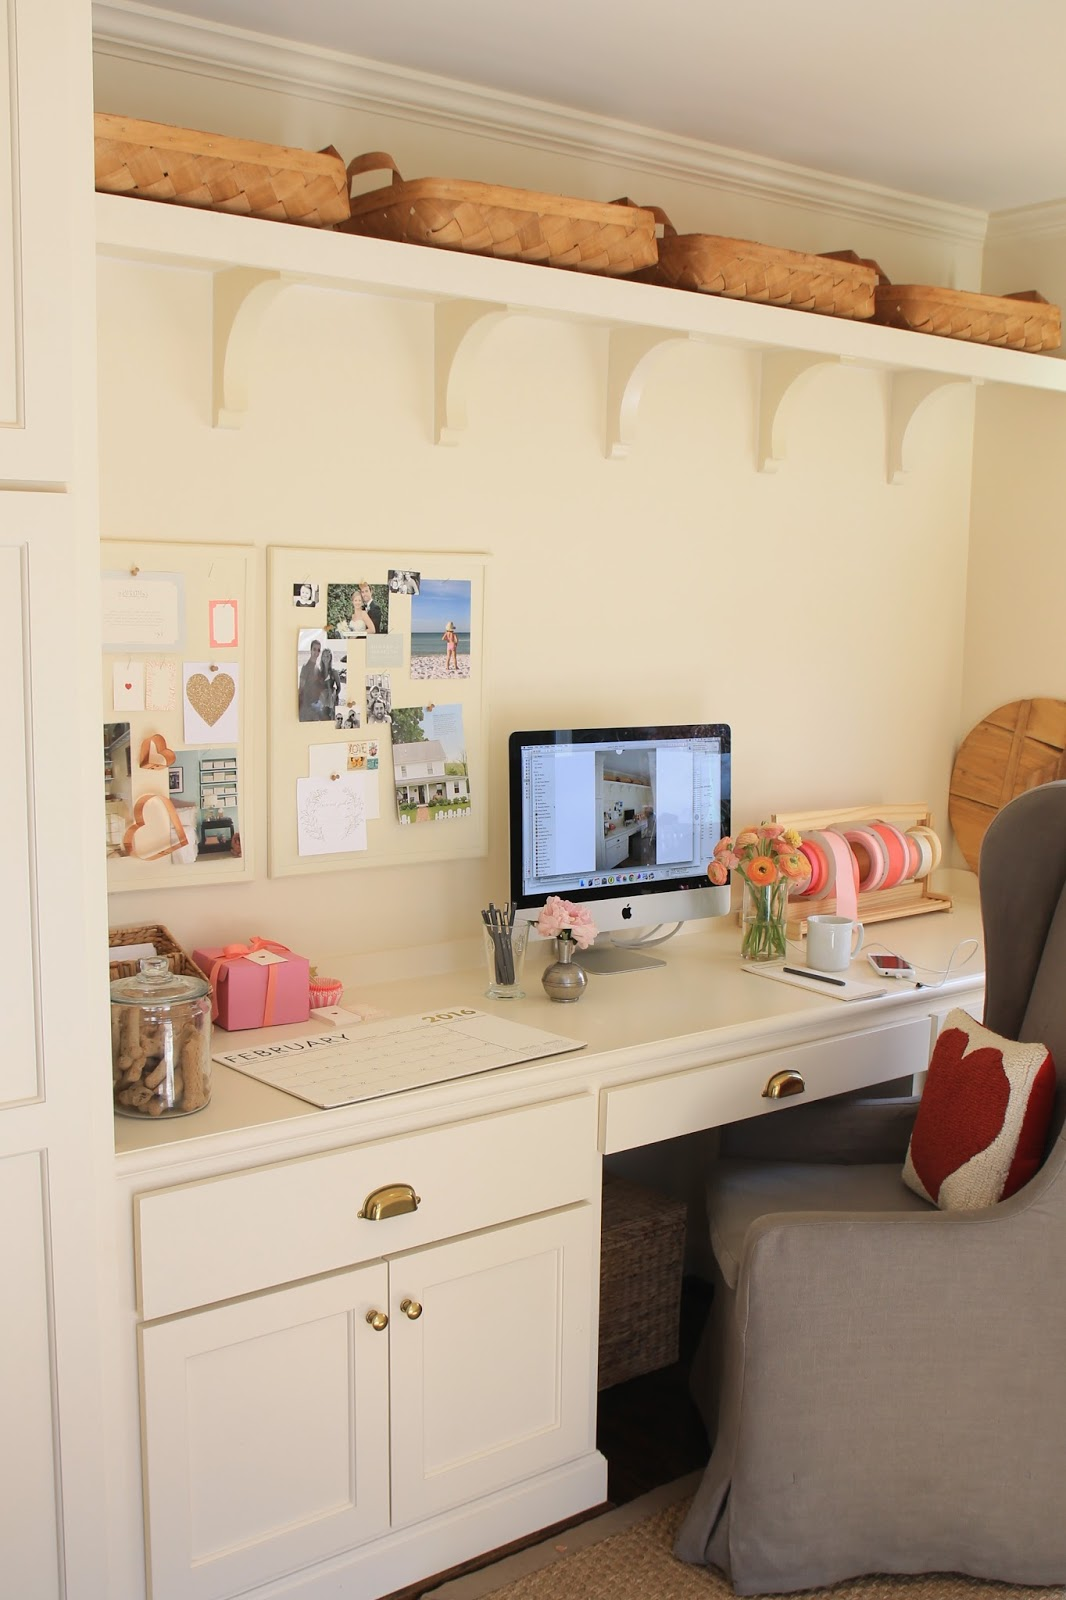 My Office Space... In The Mudroom : )